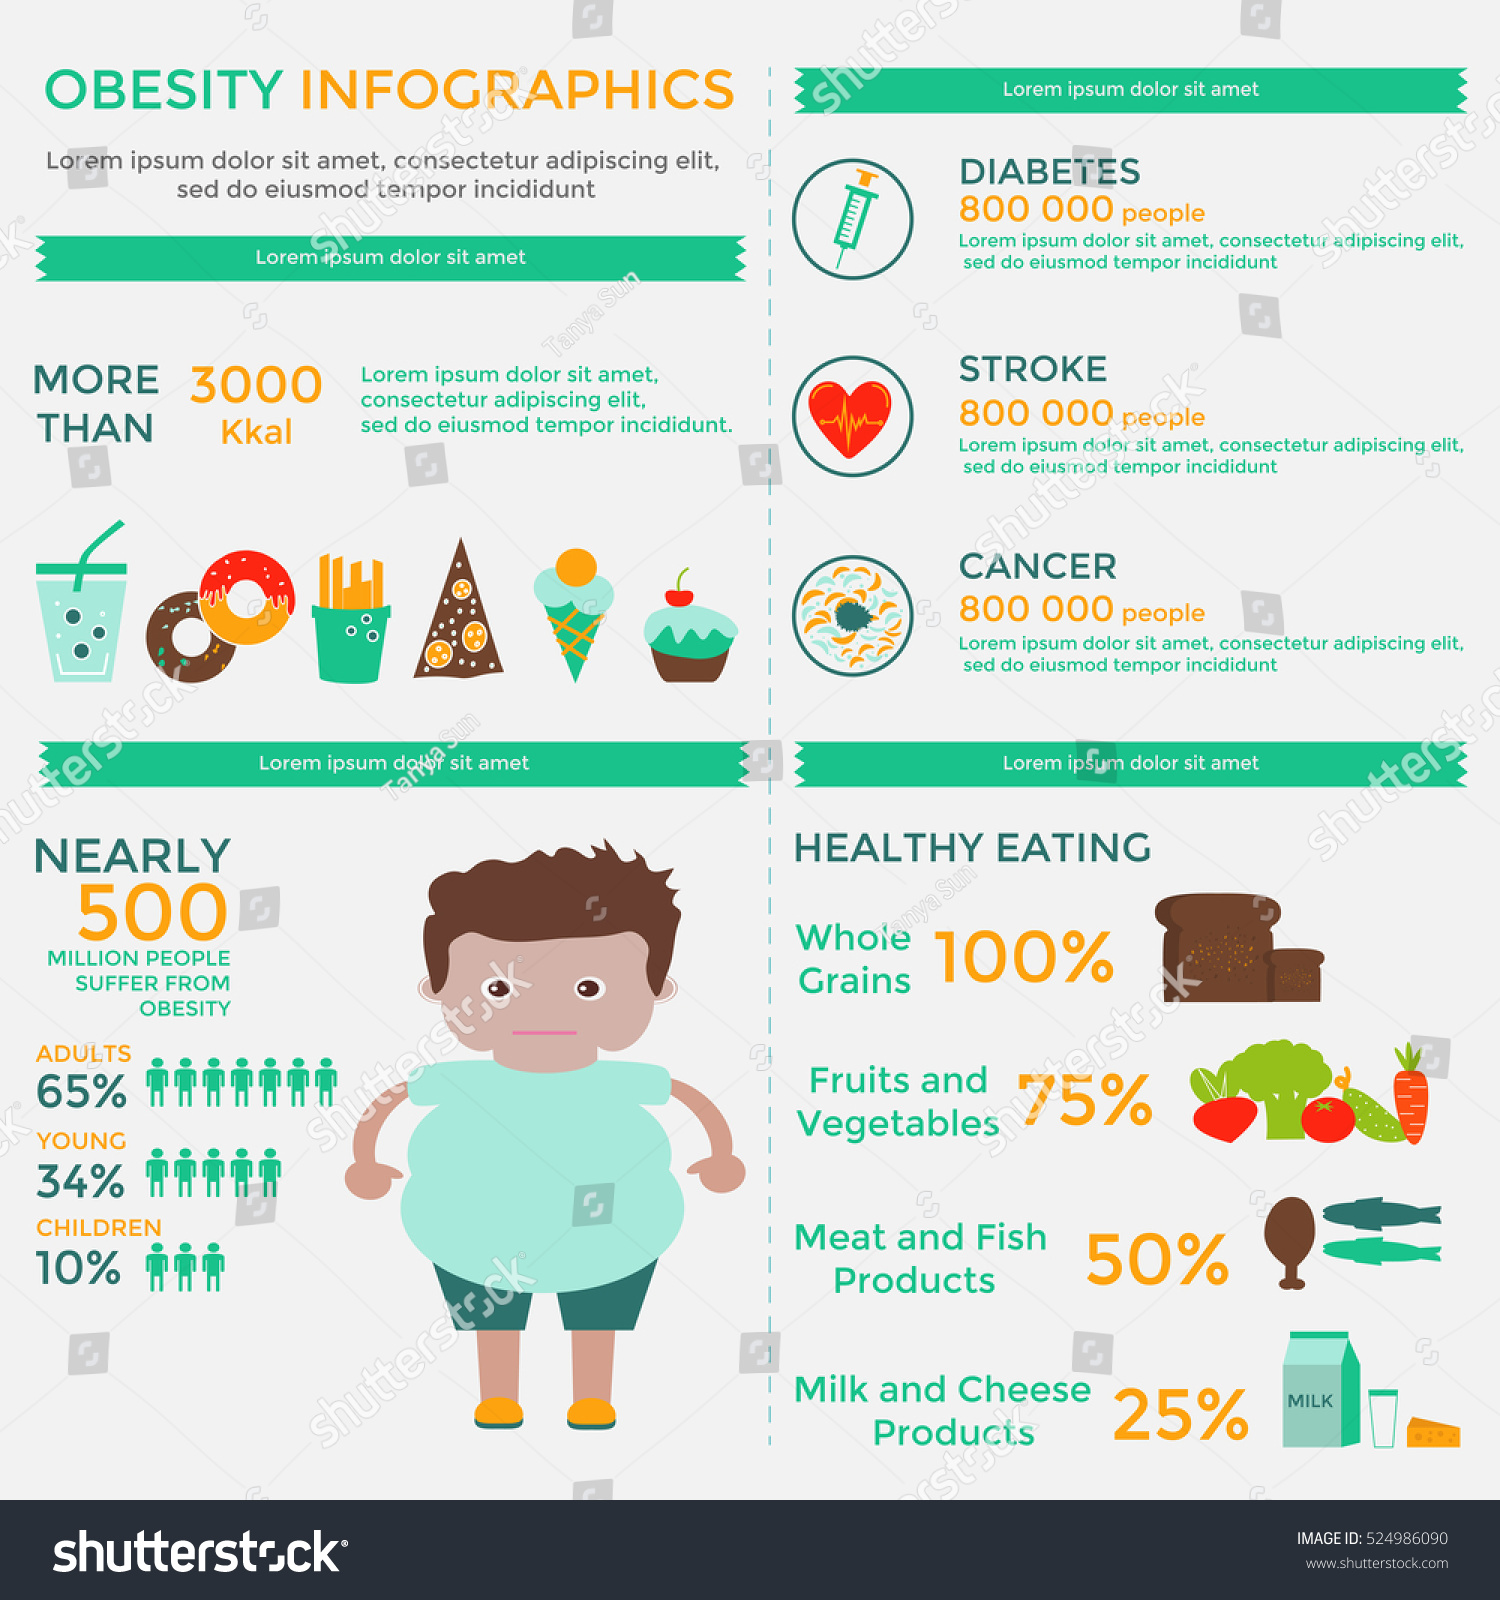 Sedentary Lifestyle: Obesity Infographic Template Fast Food Sedentary Stock